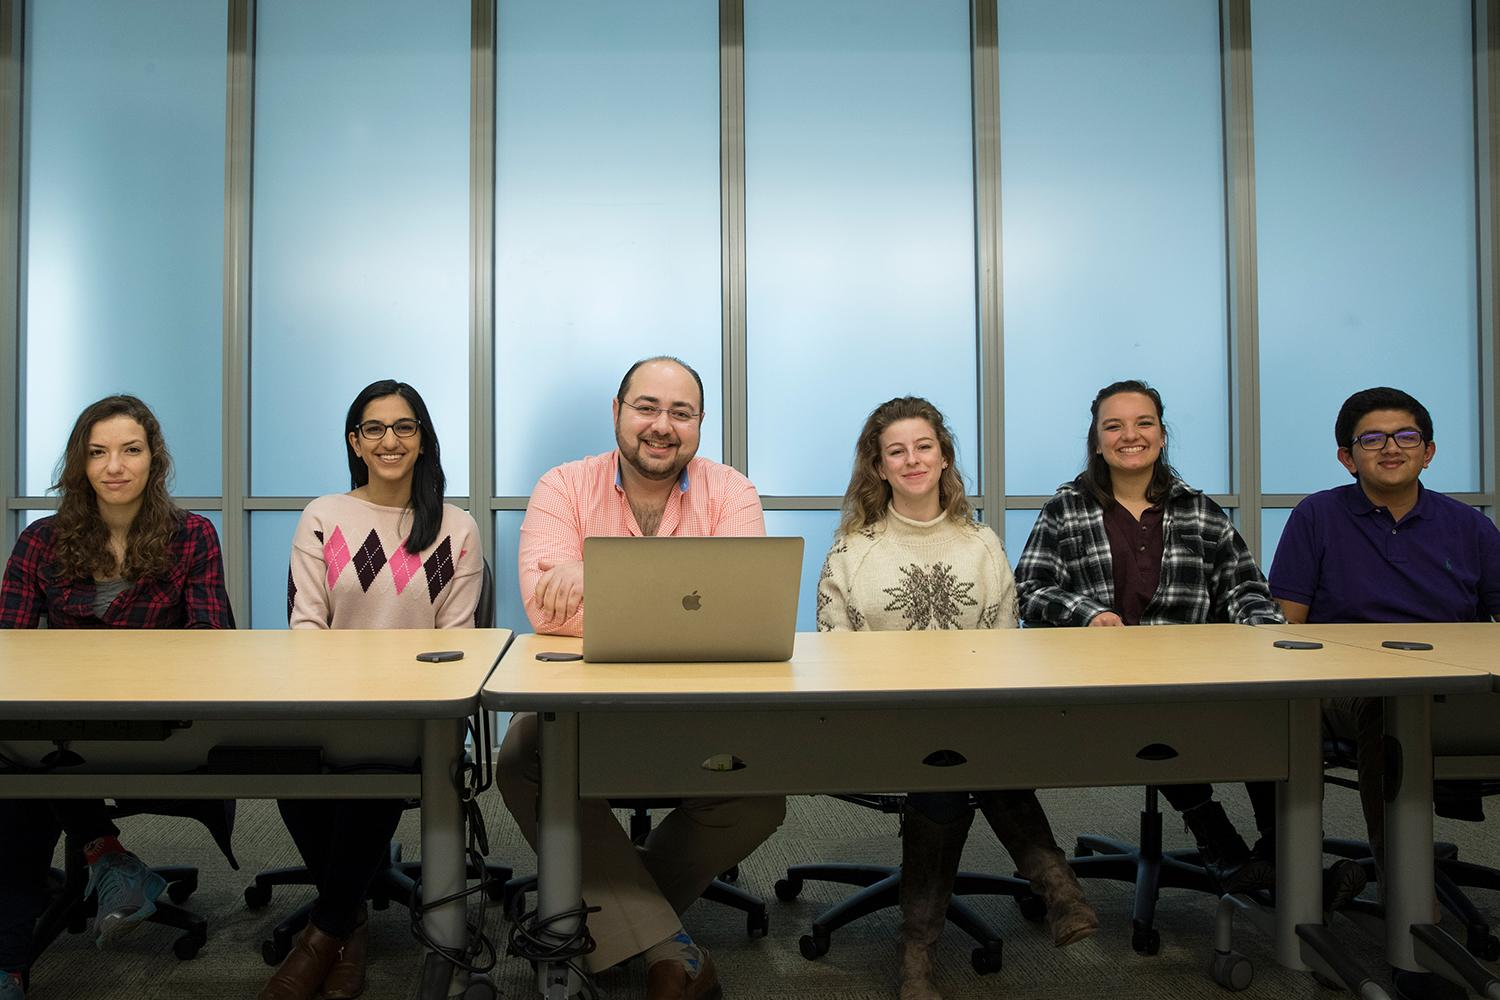 Computer science professor Ahmed Ibrahim, center, with students, from left, Monique Mezher, Simmy Bhatia, Maggie Gates, Mariah Kenny and Shaishav Naik.